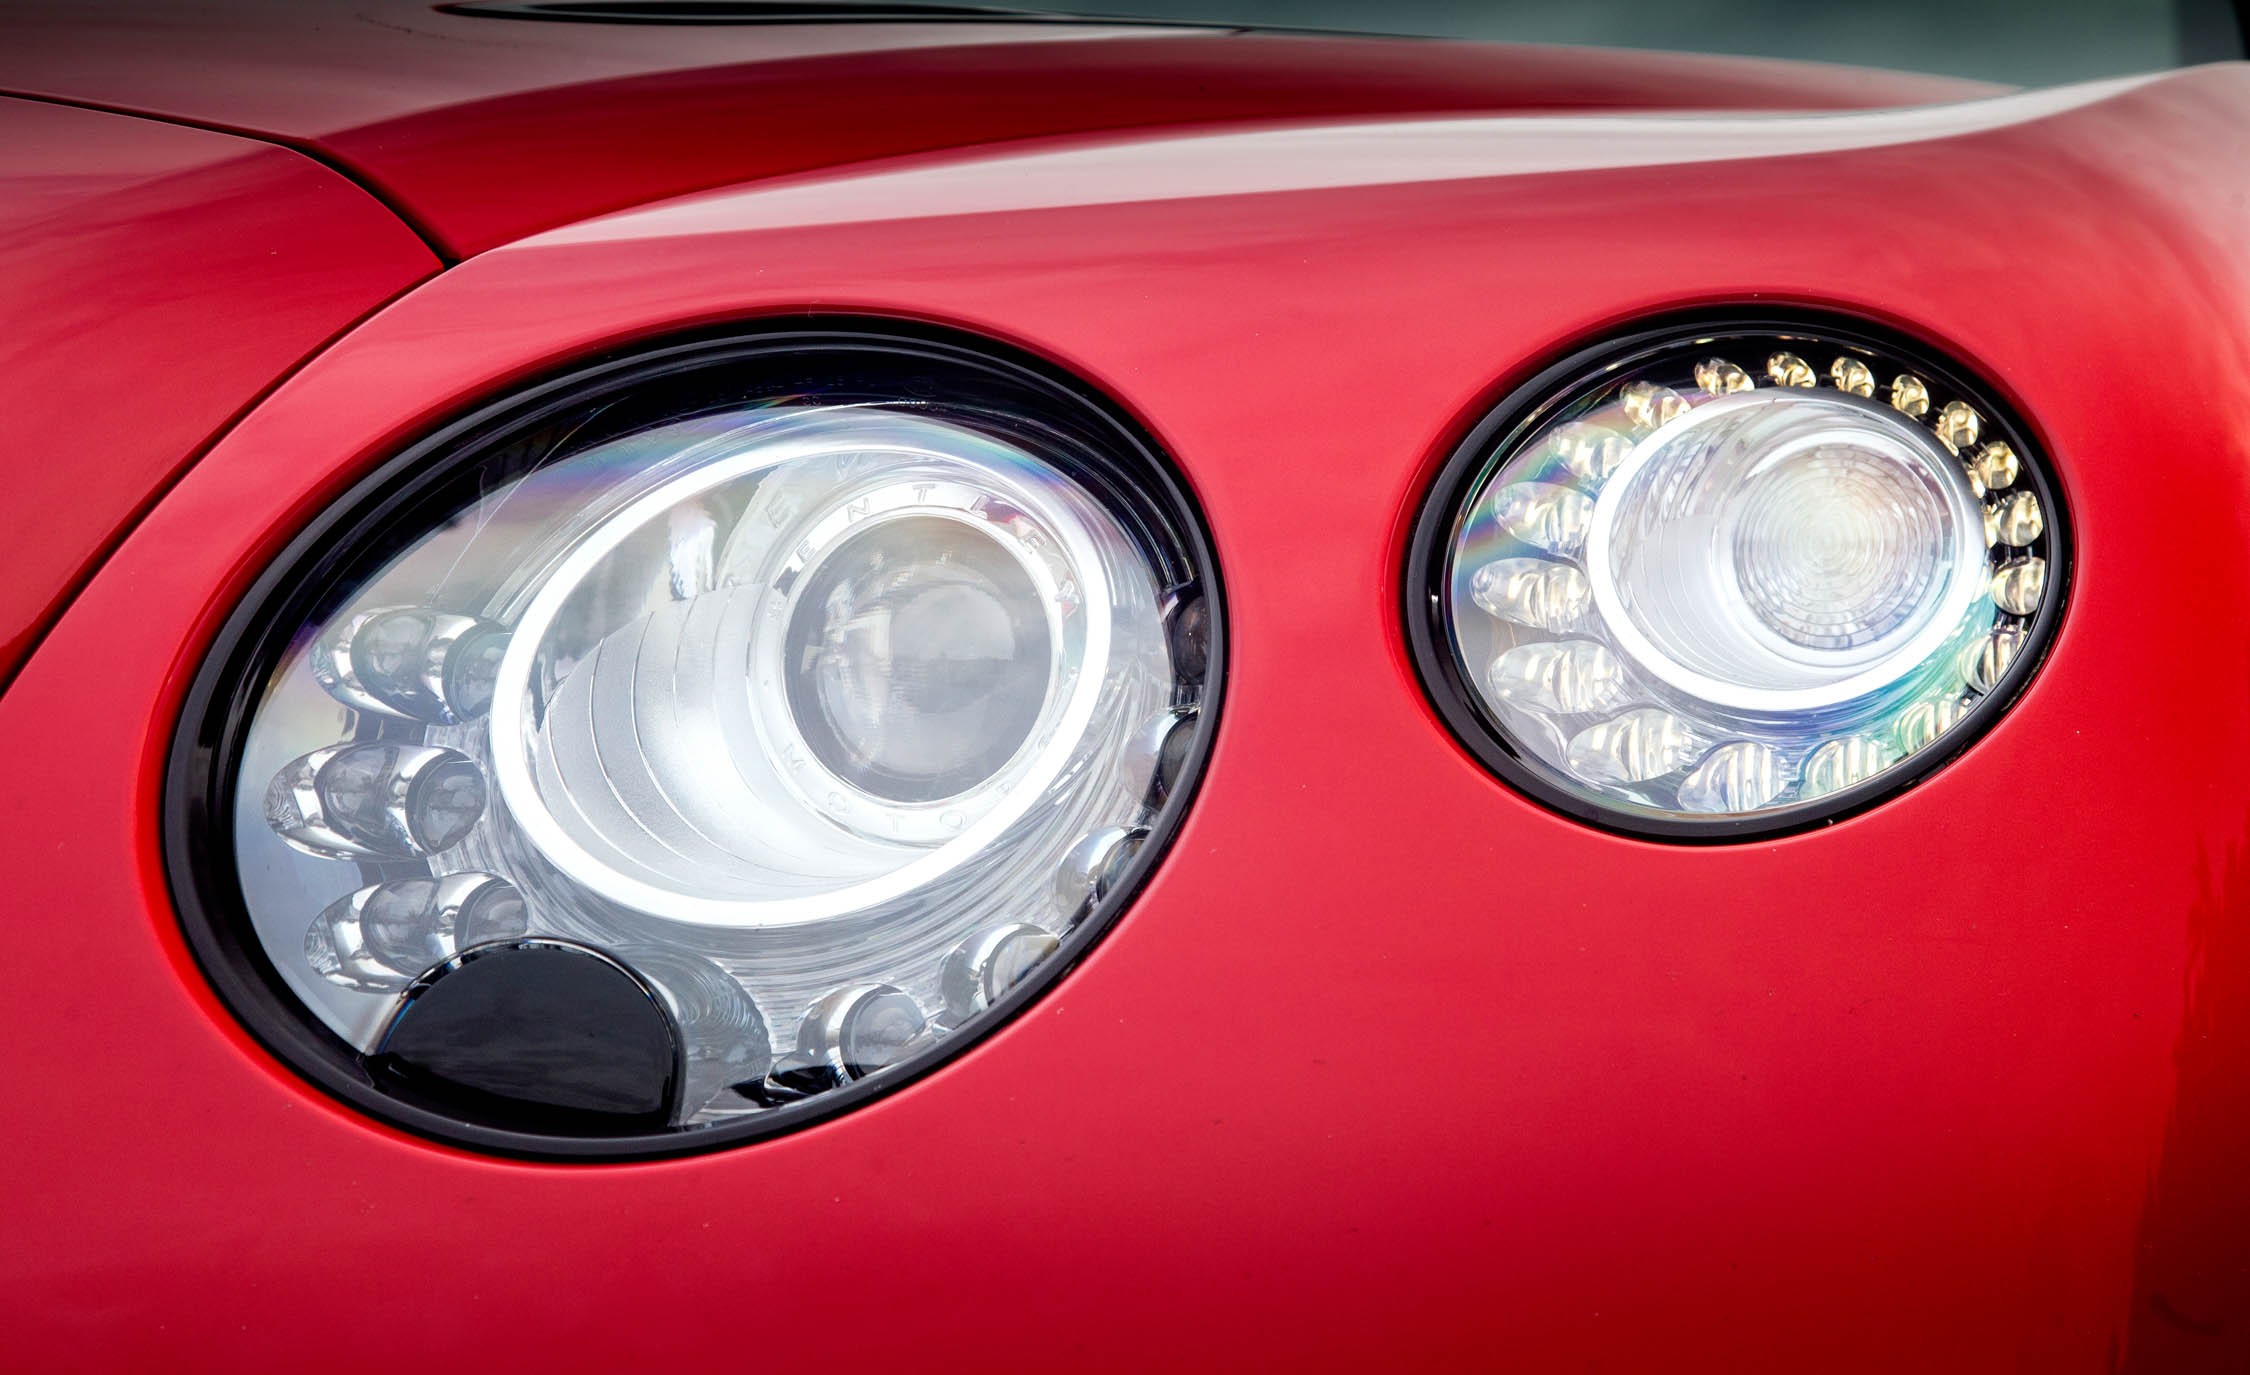 2018 Bentley Continental Supersports Exterior View Headlight (Photo 18 of 66)